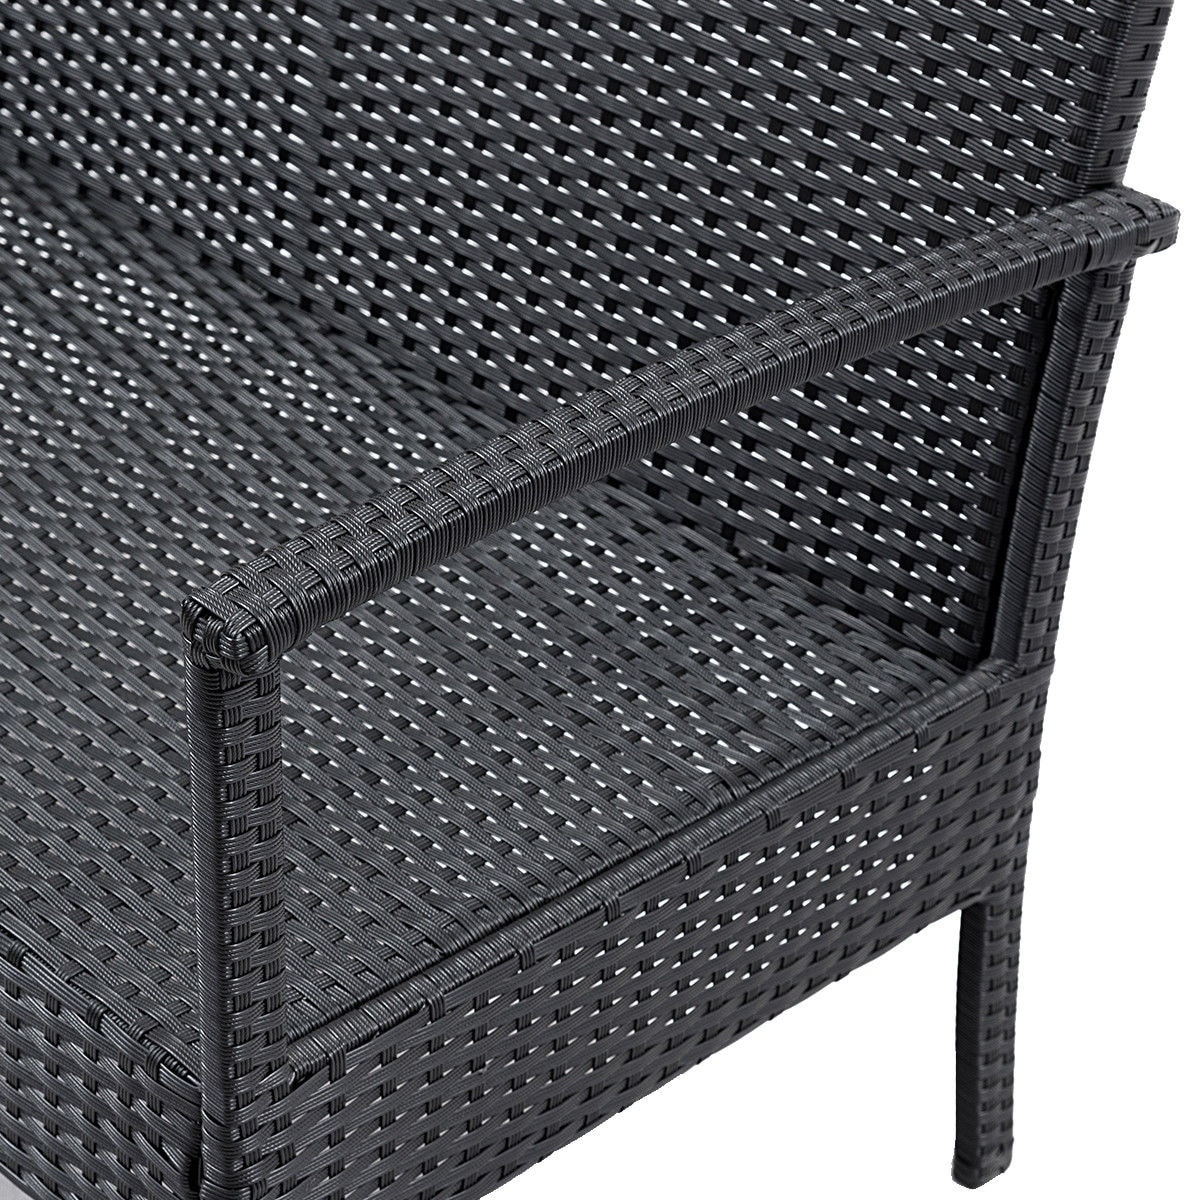 Anatol 3 Seater Retro Sofa Costway 4 Pcs Outdoor Patio Rattan Wicker Furniture Set Table Sofa Cushioned Deck Black